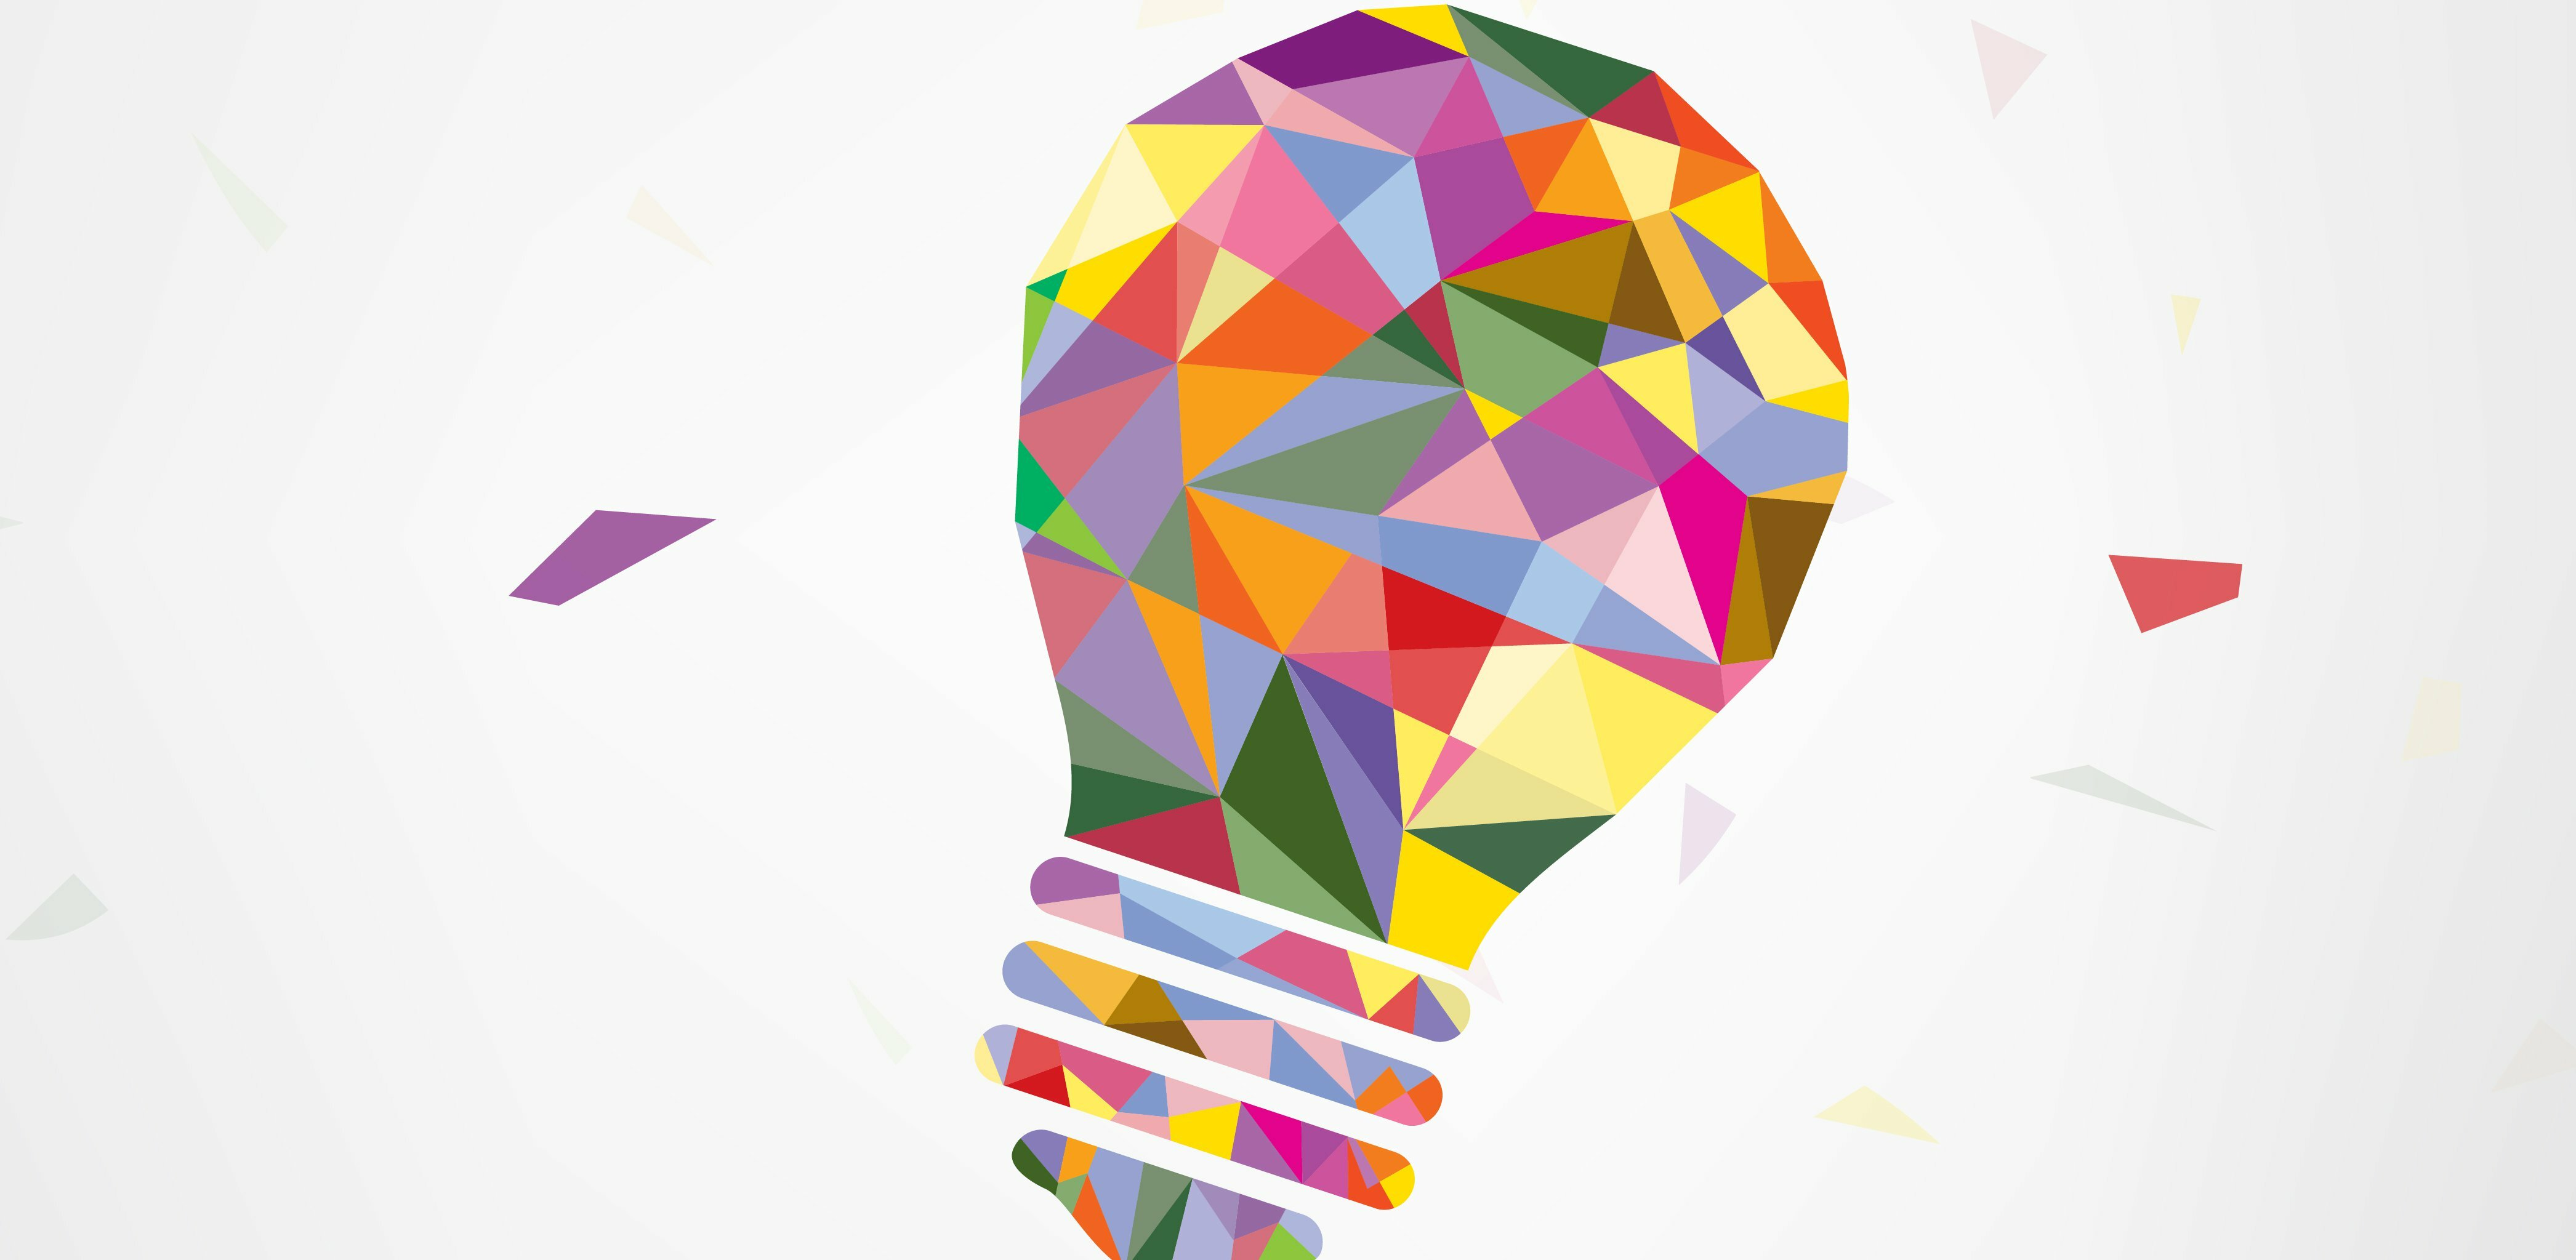 21 Quick Ways to Kick-Start Your Creativity and Come Up With Brilliant Ideas